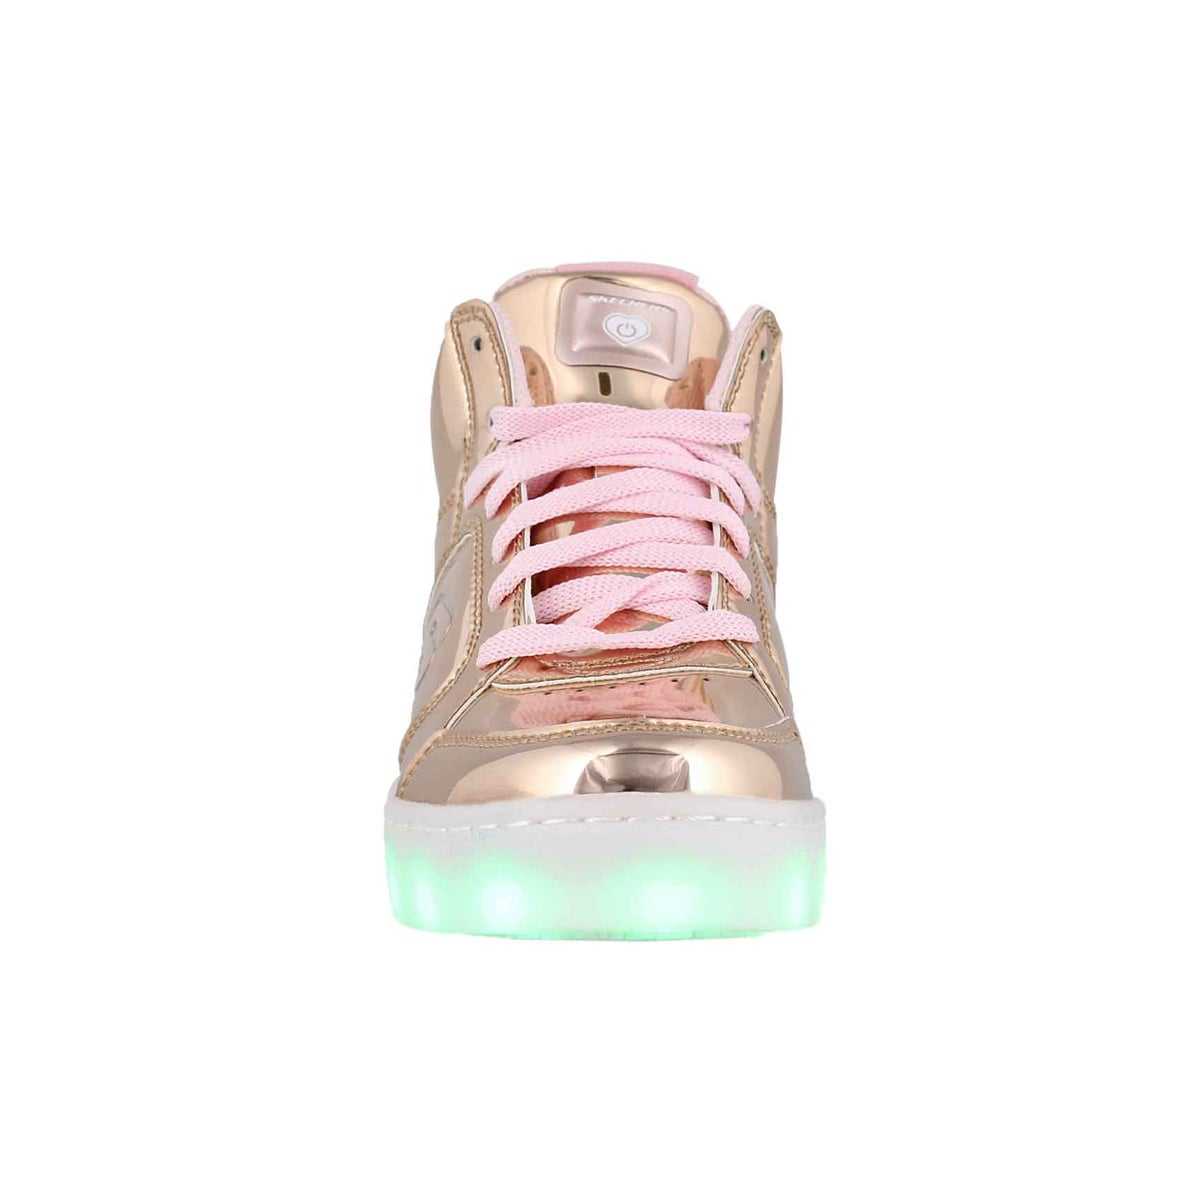 Grls Energy Lights rose gold sneaker